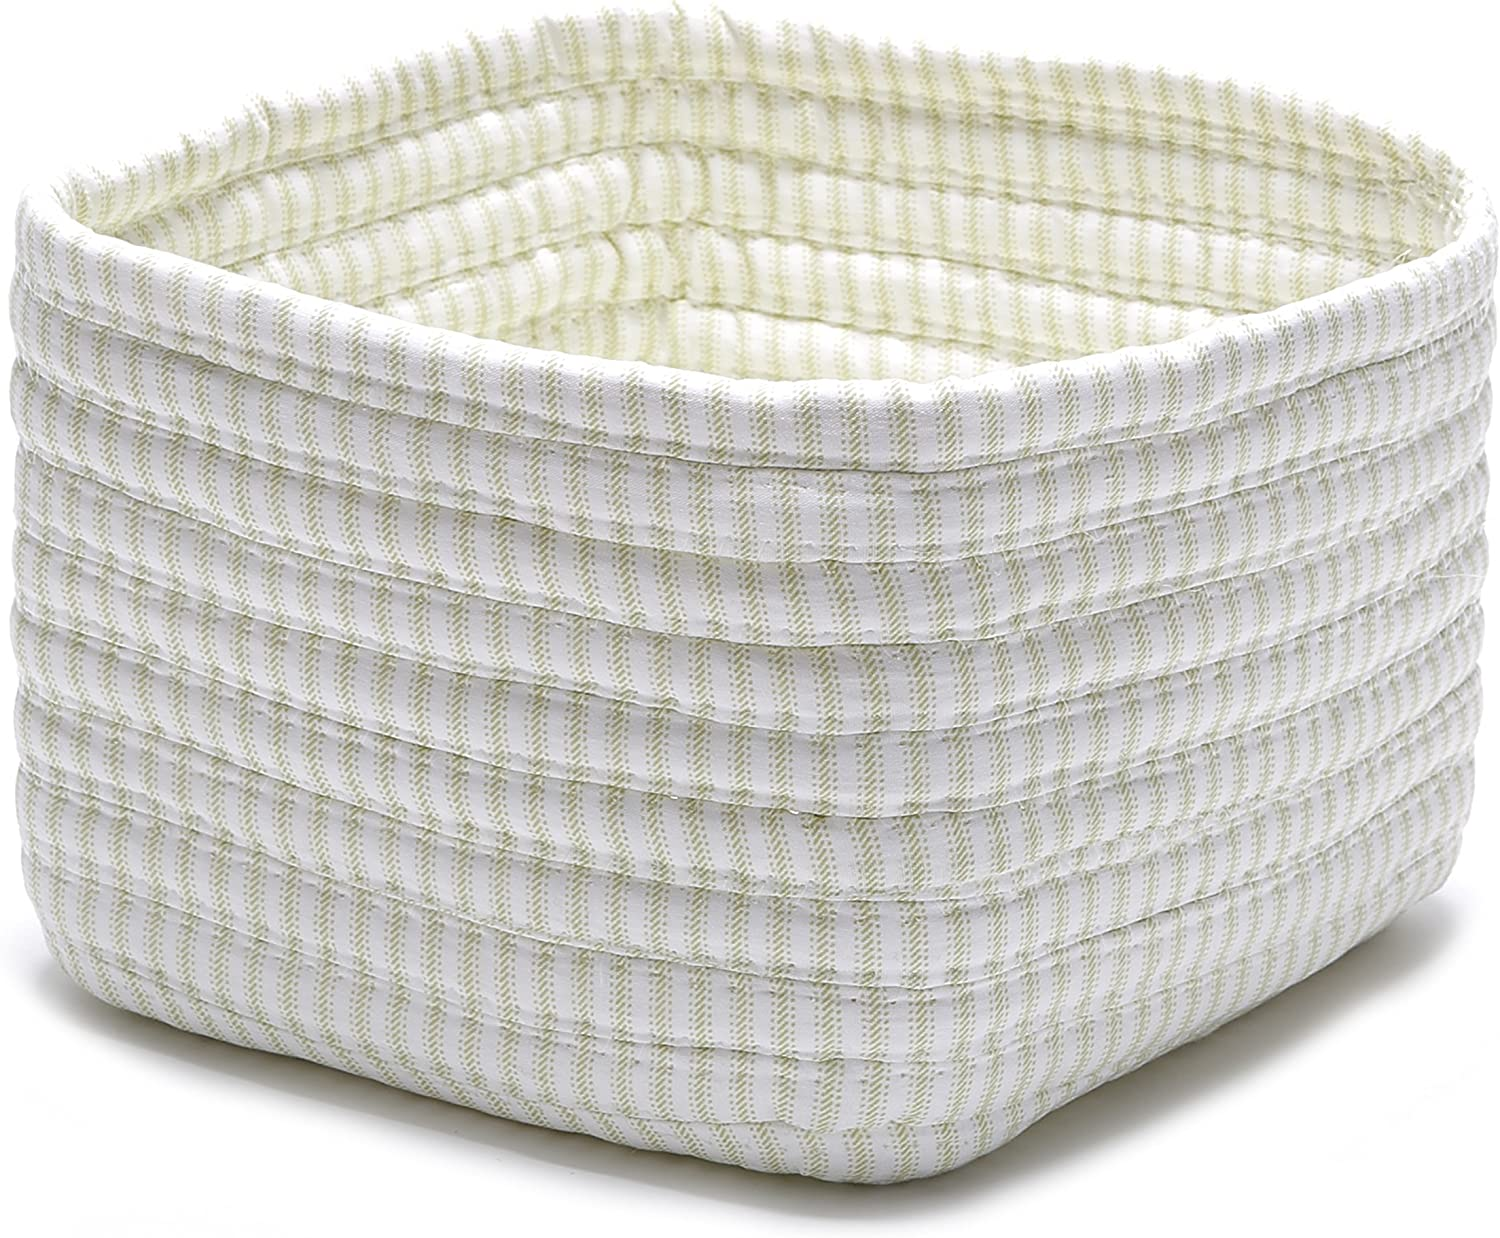 Ticking Shelf Storage Ranking TOP7 Square Basket Limelig 8-Inch 11 It is very popular by